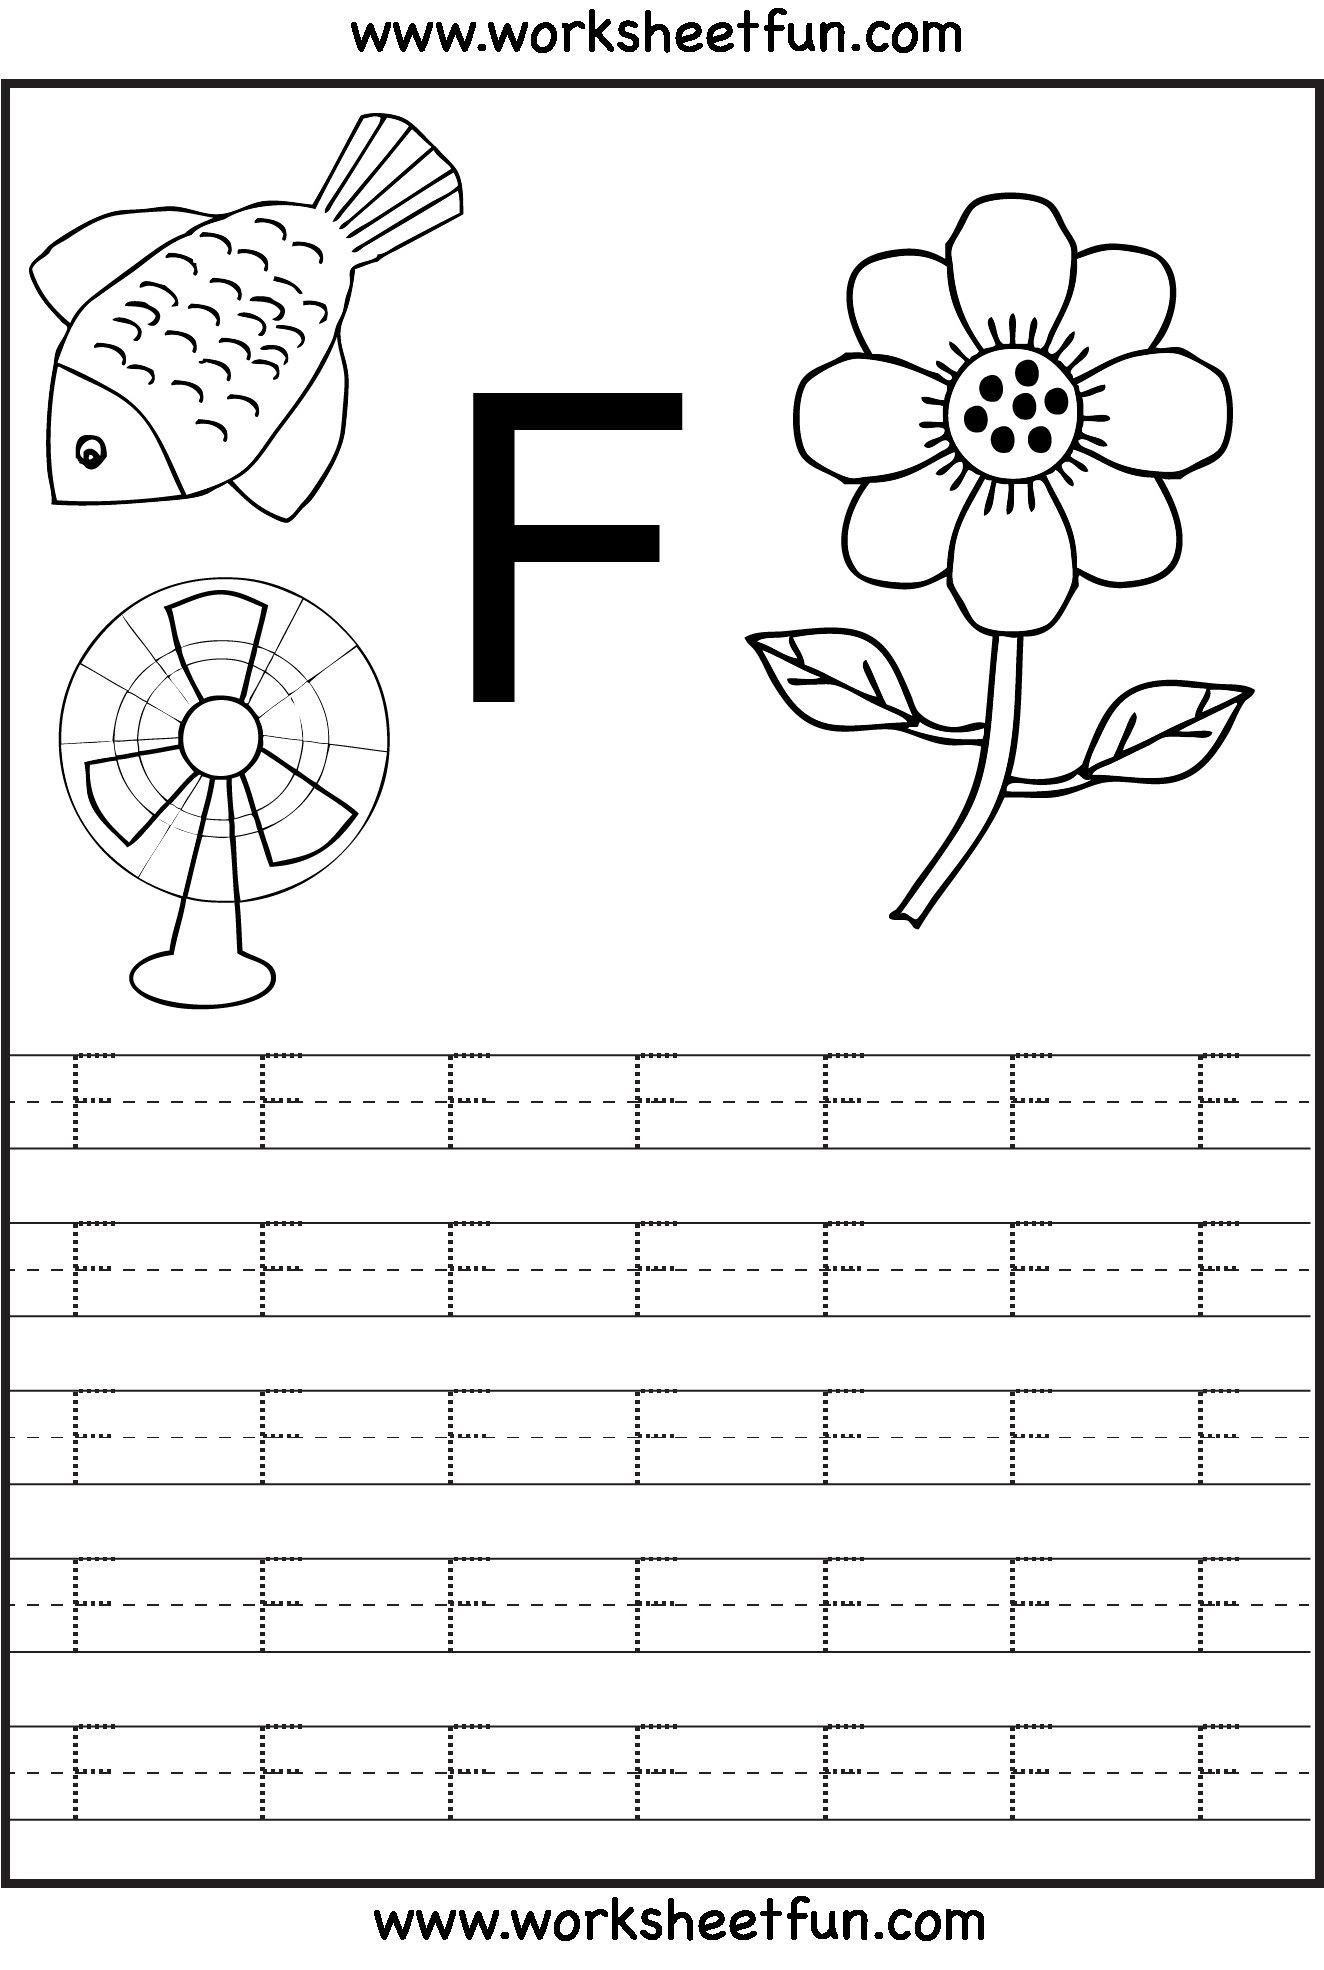 F Worksheets for Preschool Pin On Education